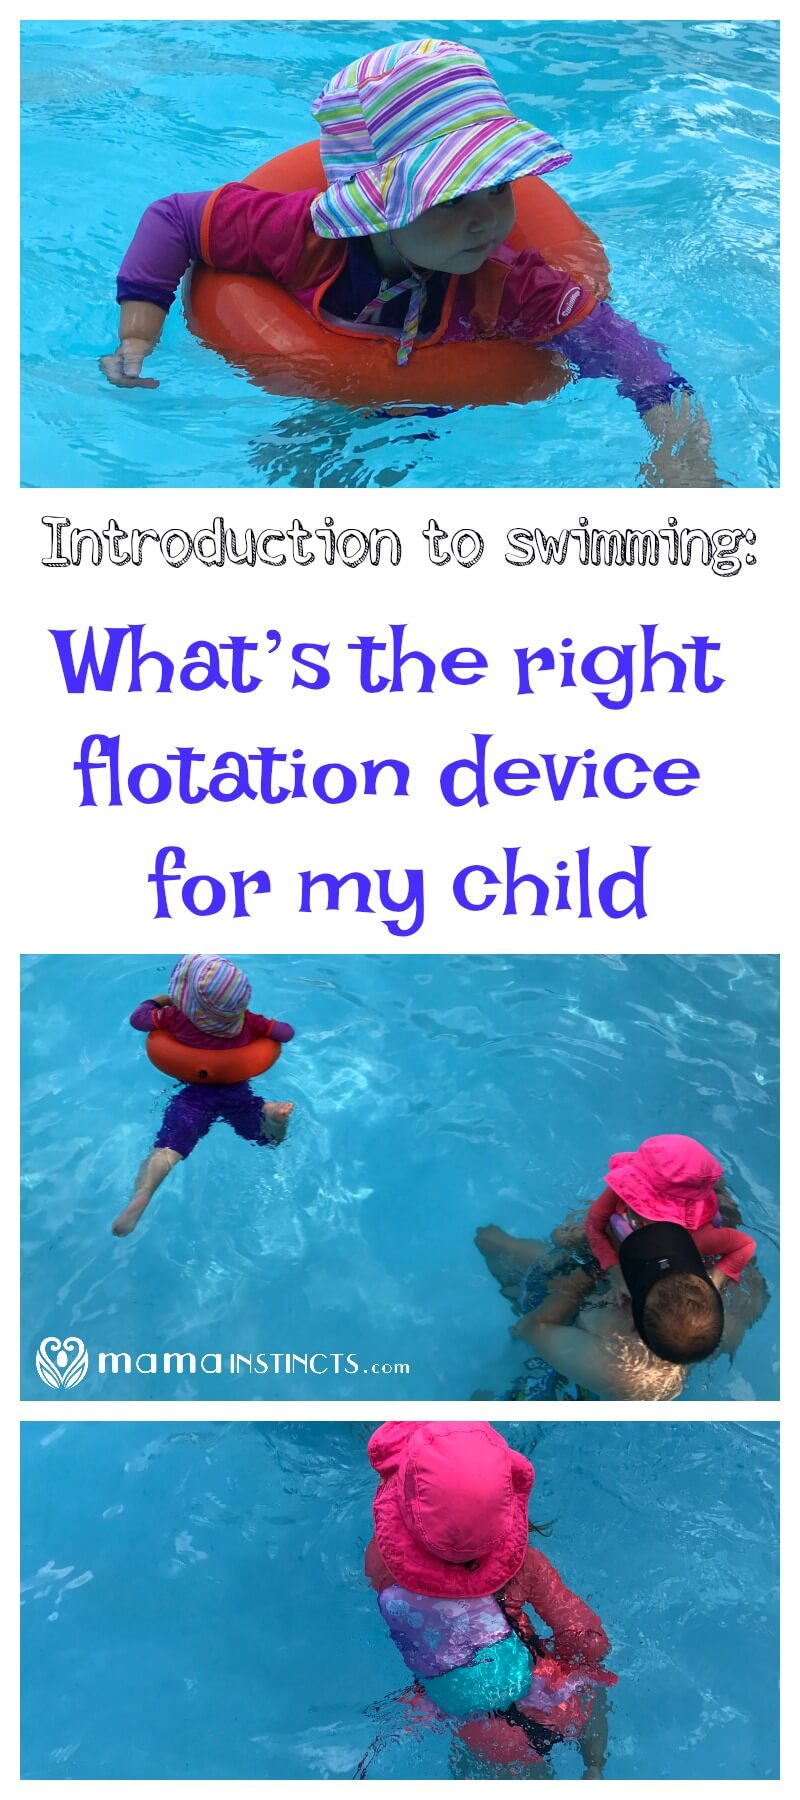 Introduction To Swimming What S The Right Flotation Device For My